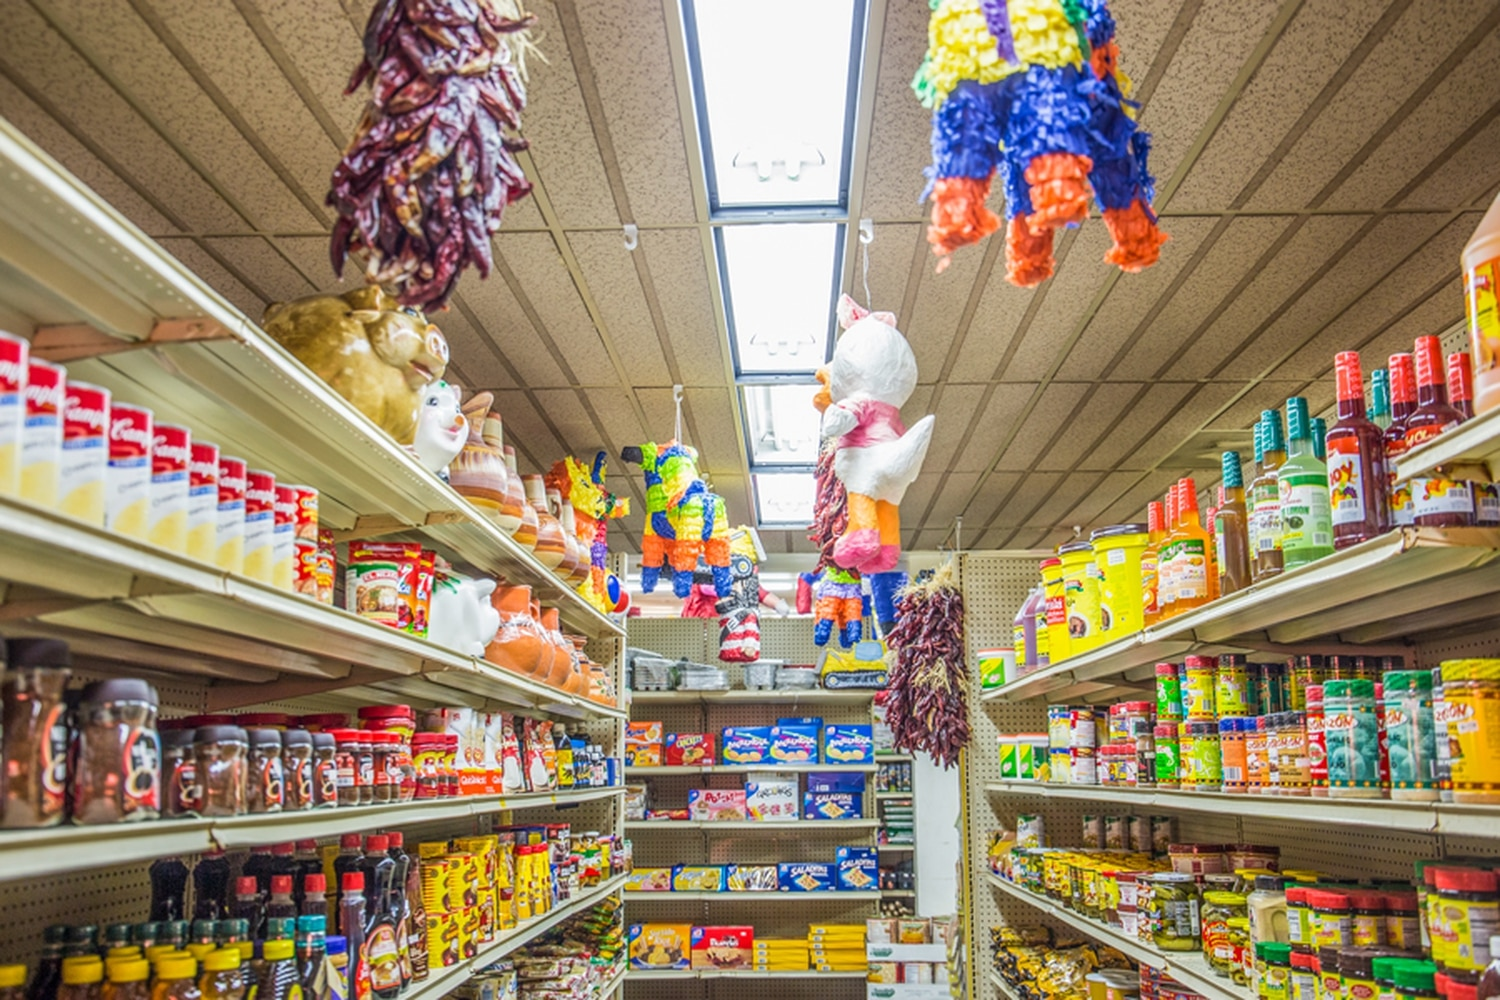 The shelves at stores like El Paisano are stocked with groceries, novelties, and even haircare and medicine from south of here.